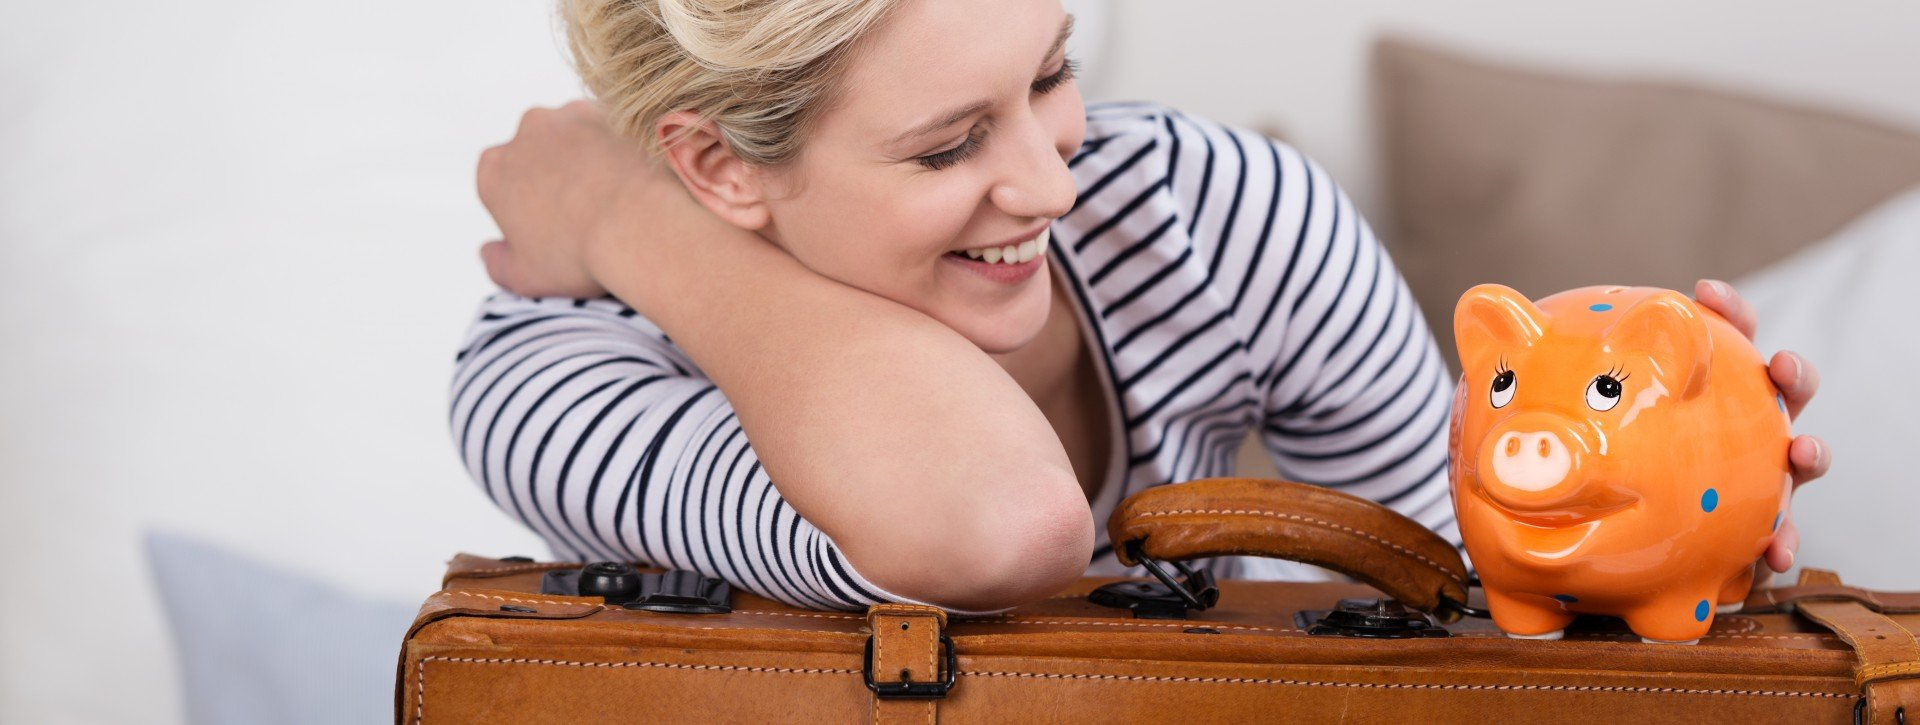 A blond woman is smiling at an orange piggy bank